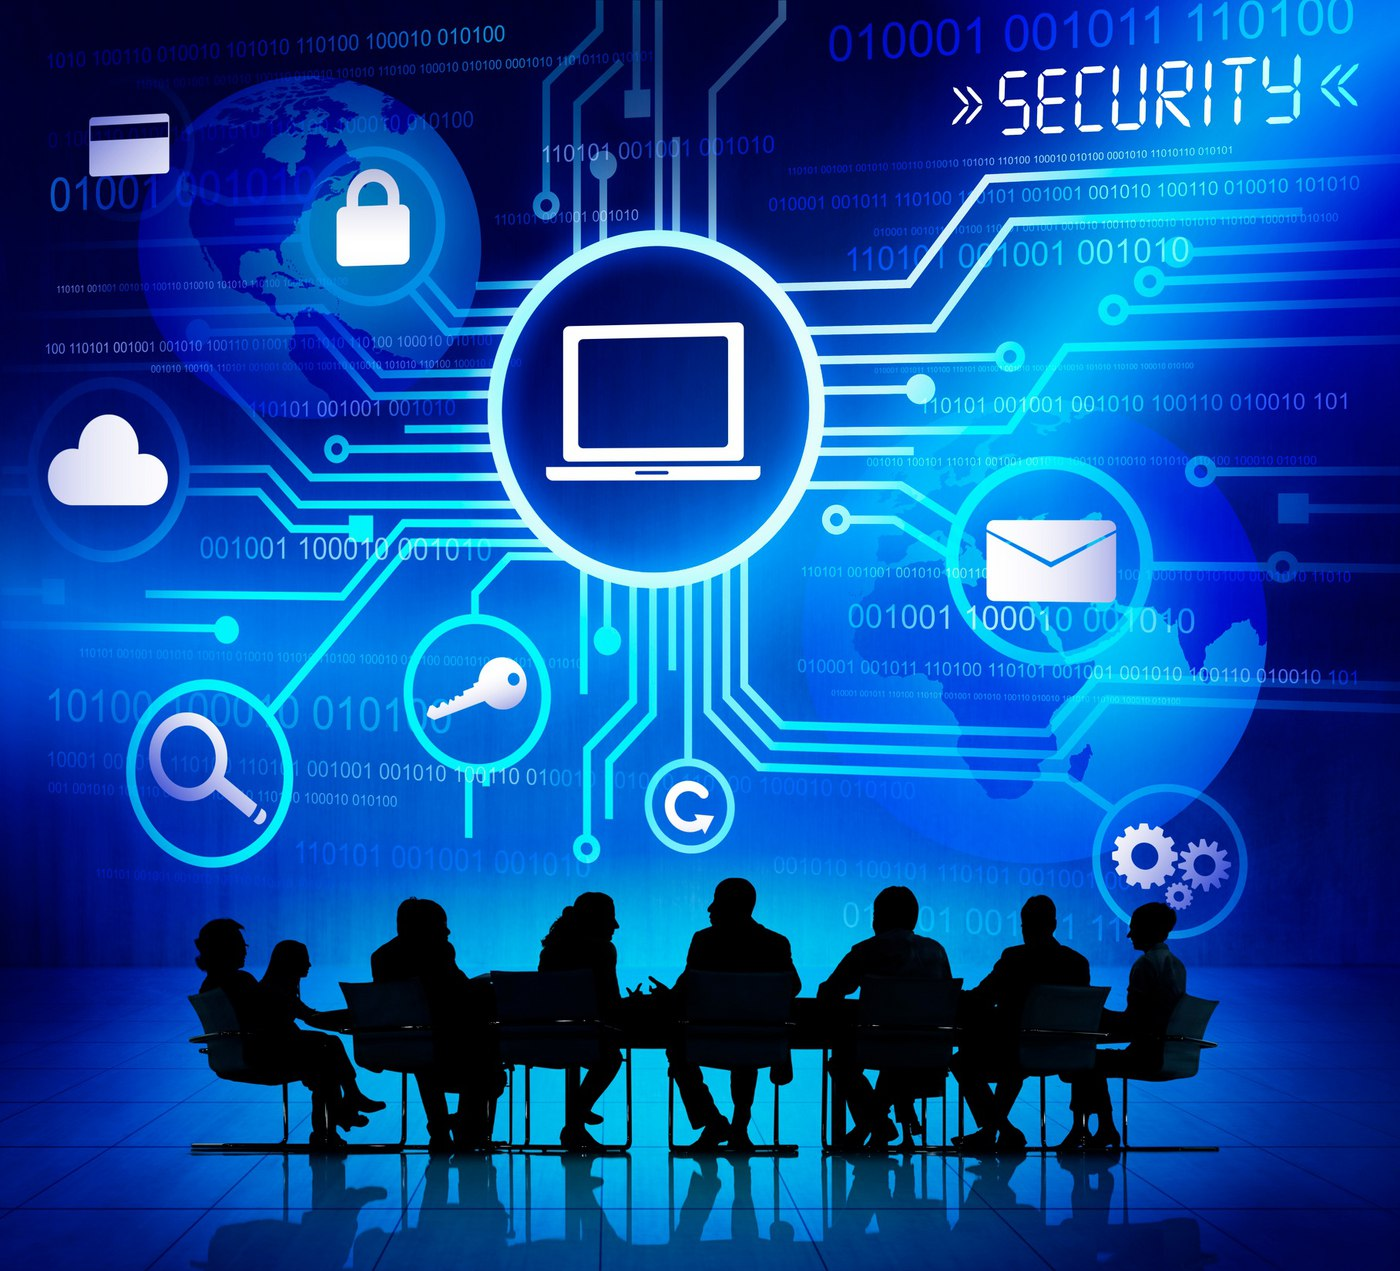 The Rise of Enterprise-class Cybersecurity Vendors